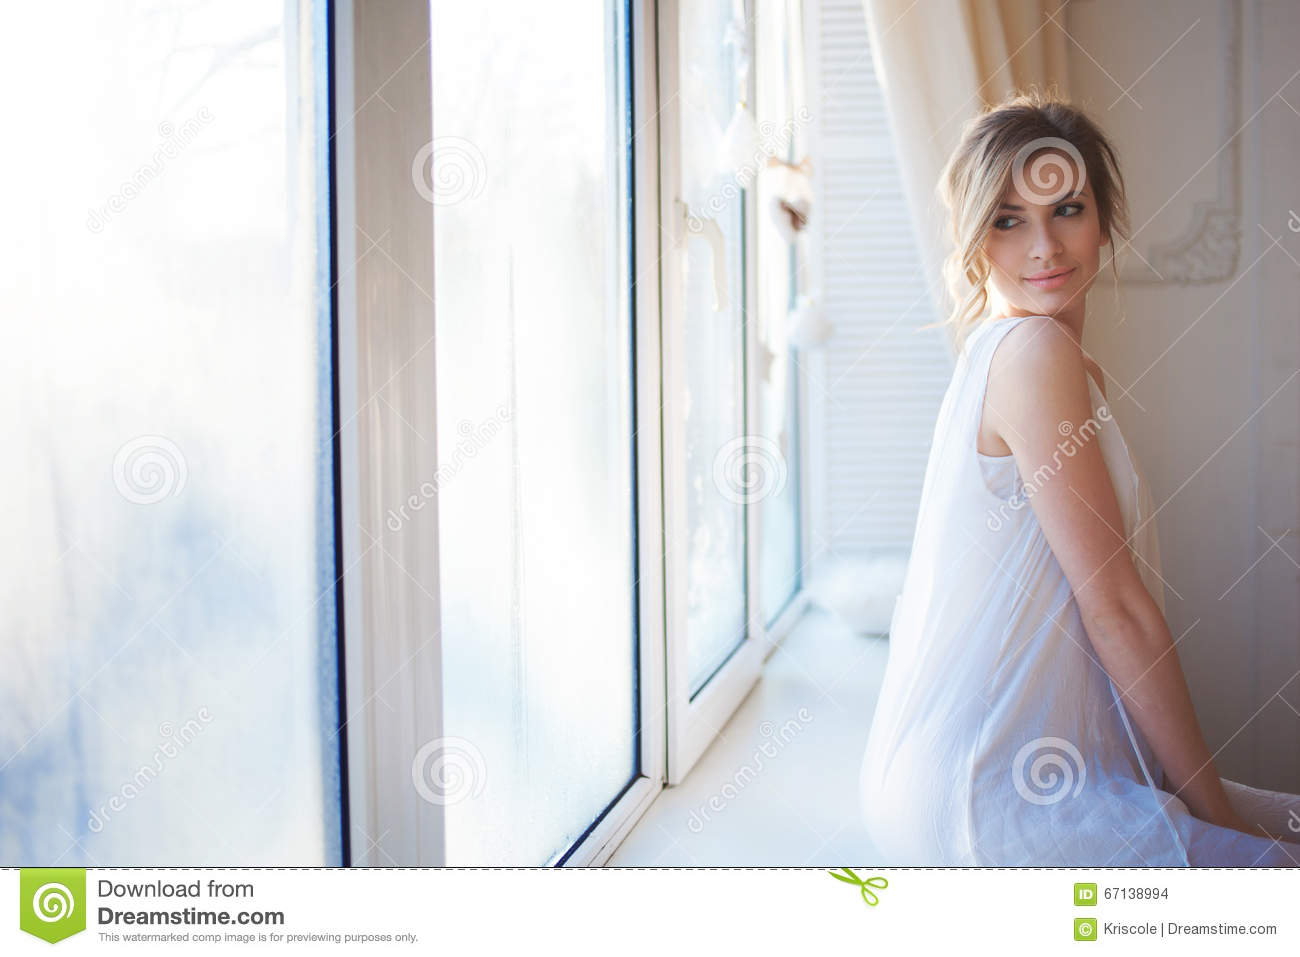 beautiful woman with fresh daily makeup and romantic wavy hairstyle, sitting at the windowsill